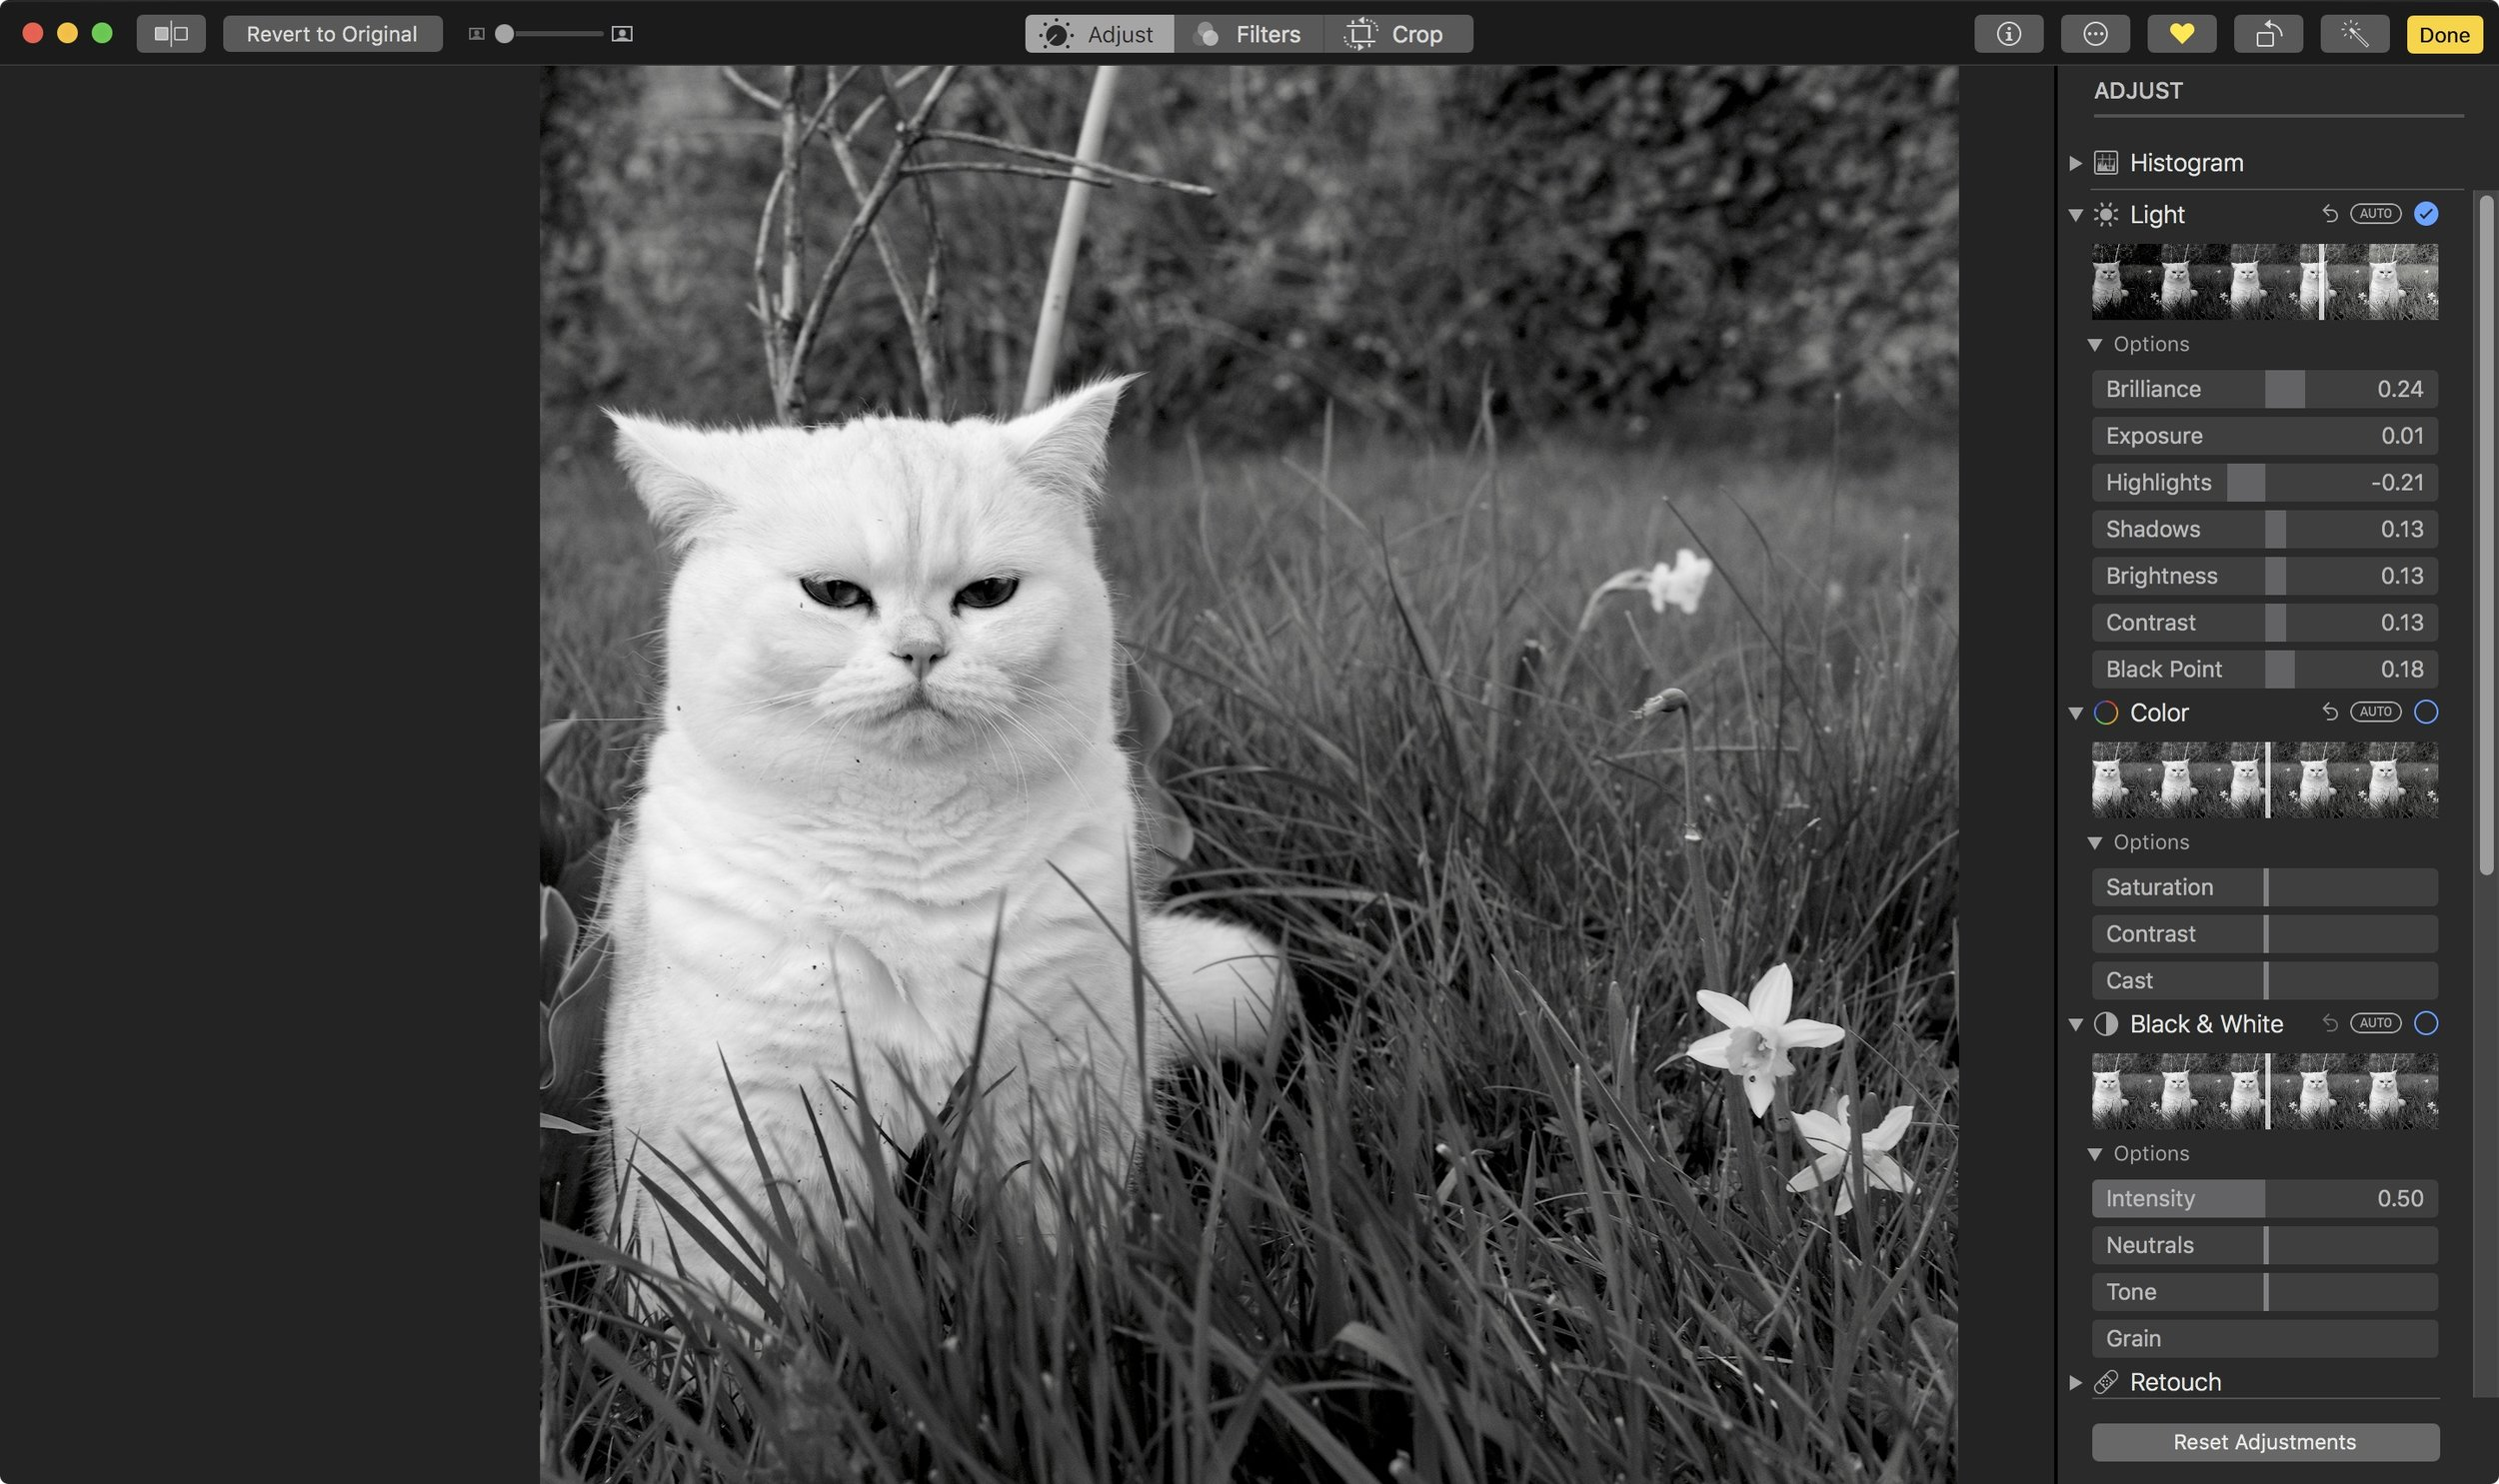 This photo was shot in black and white, using Fujifilm's Acros film simulation.